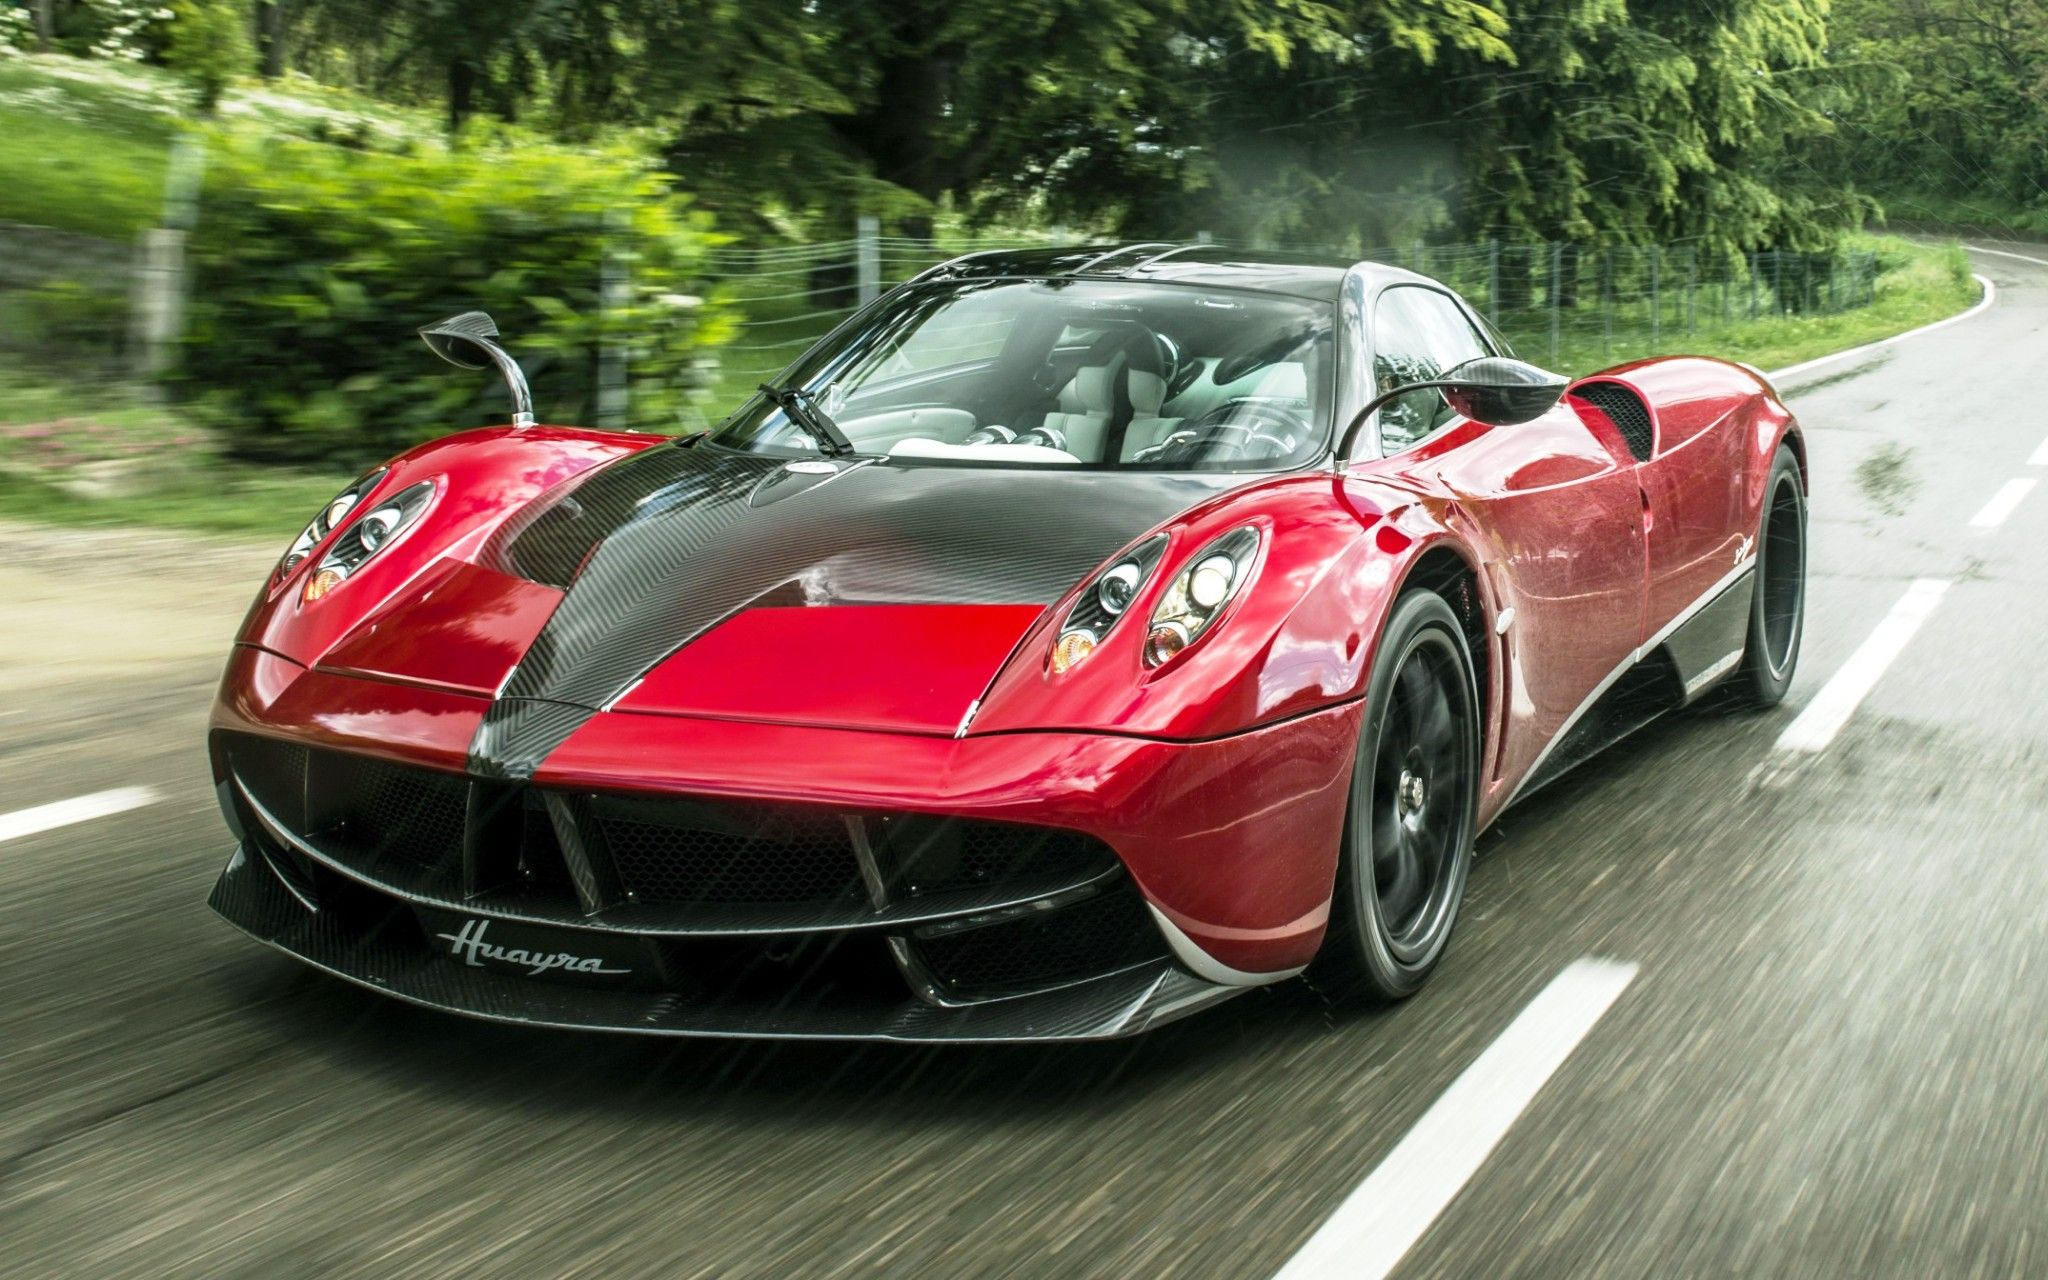 The Powerful Porsche GT3 | Pagani huayra, Cars and Super car